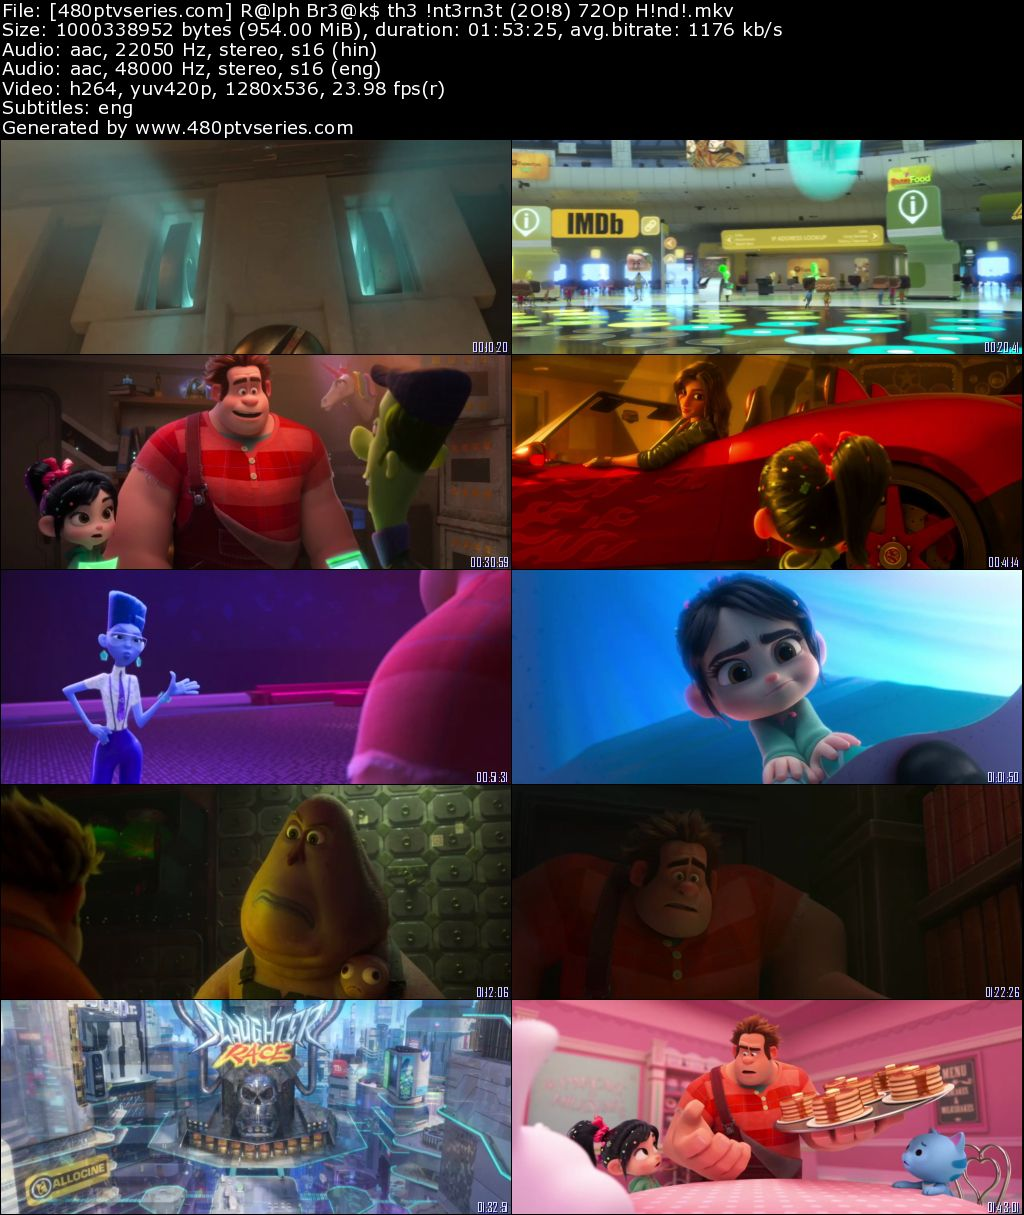 Download Ralph Breaks the Internet (2018) 950MB Full Hindi Dual Audio Movie Download 720p Web-DL Free Watch Online Full Movie Download Worldfree4u 9xmovies